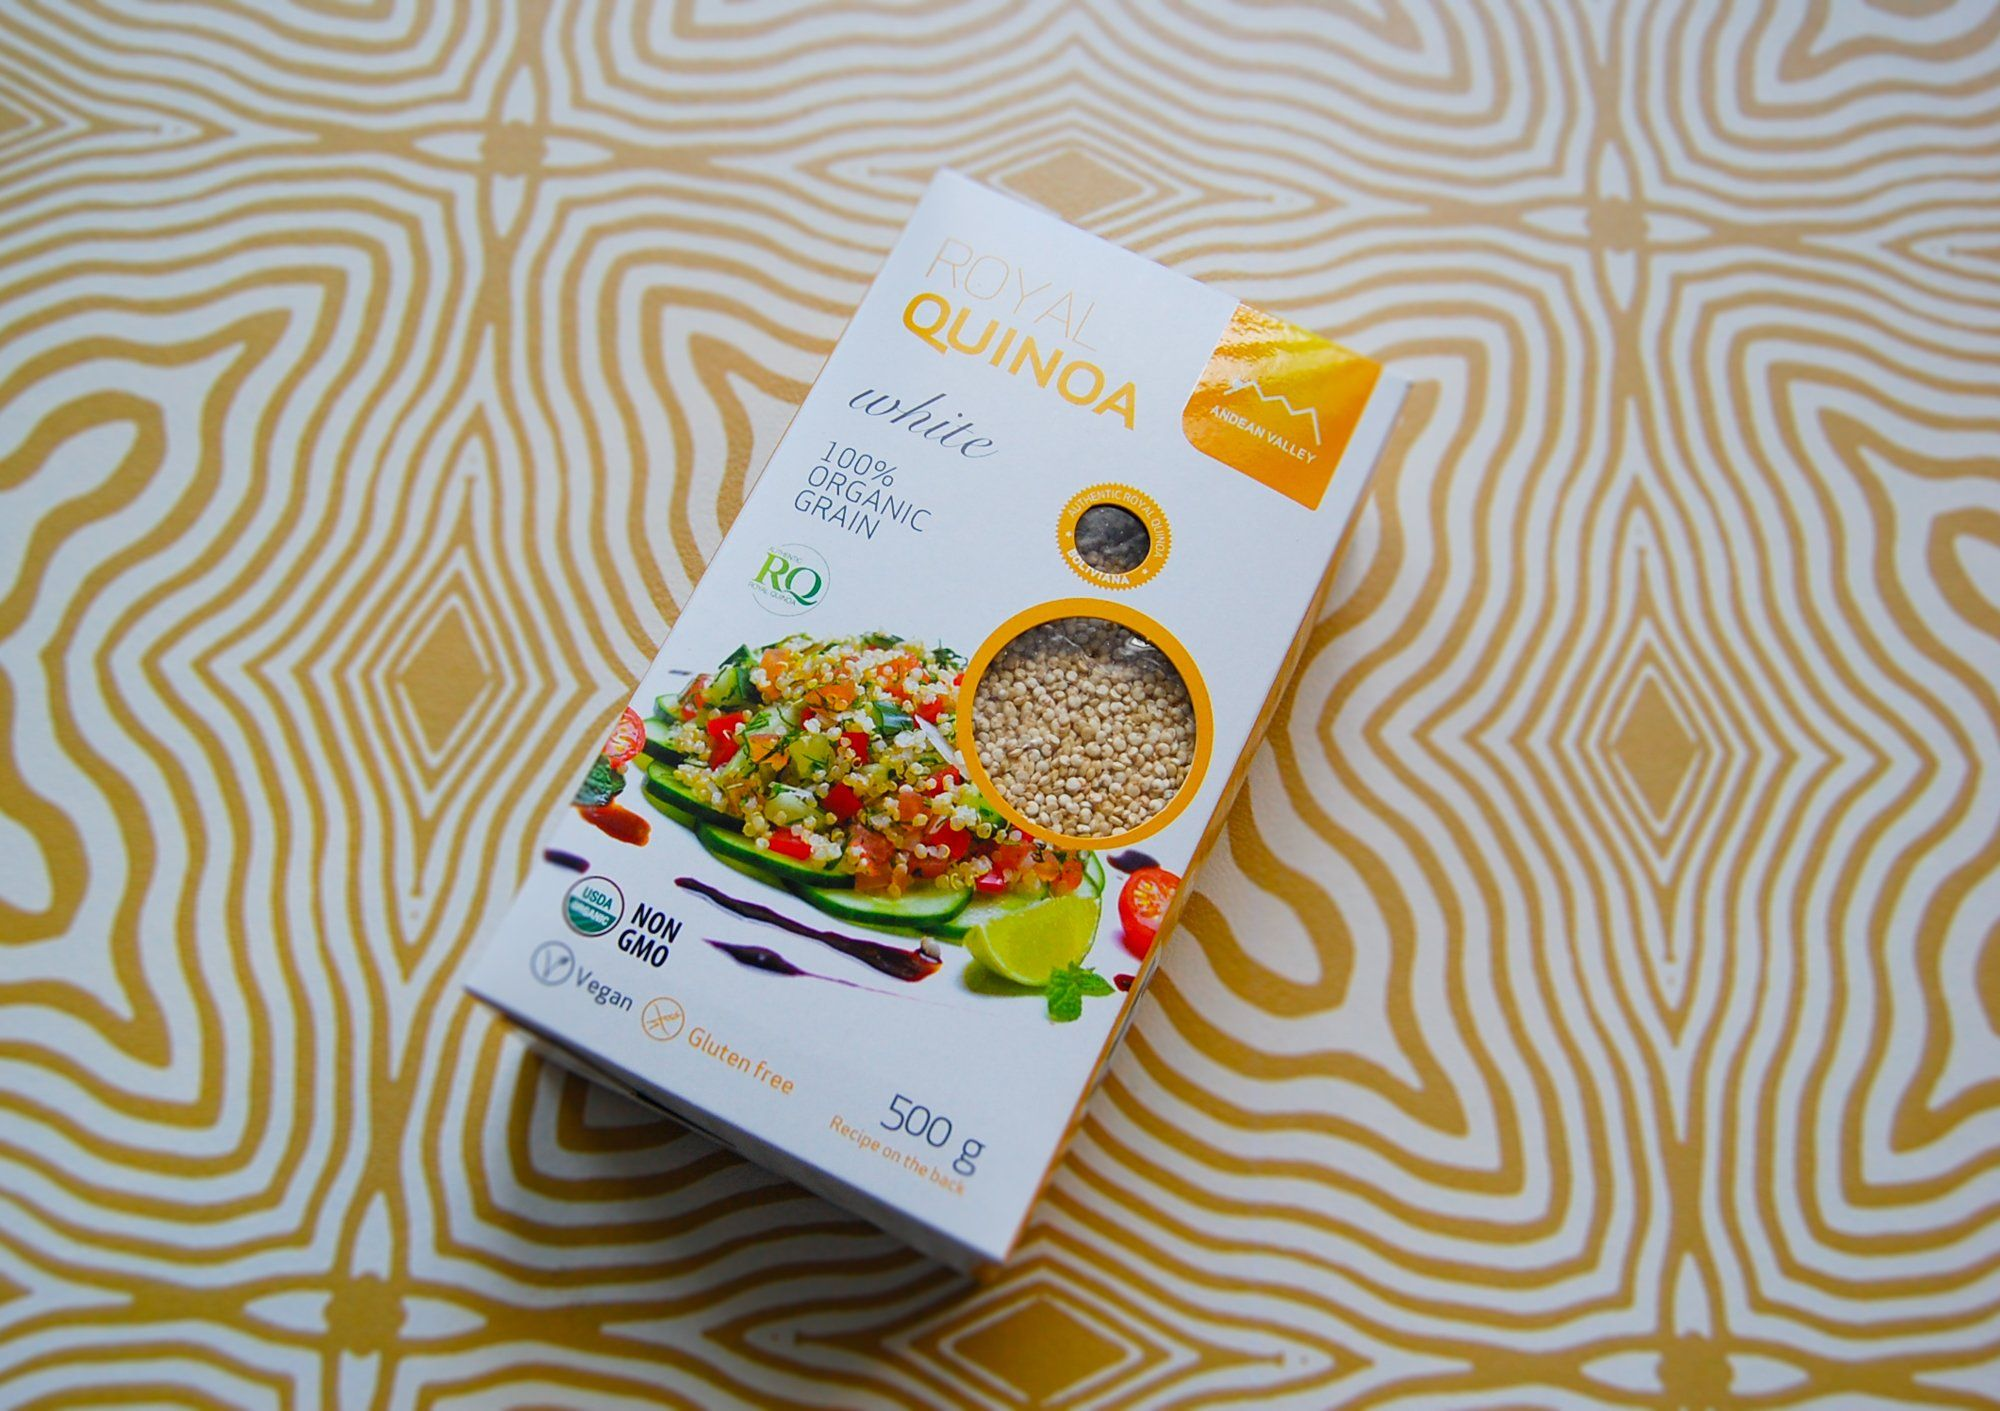 Quinoa, Royal White (500g)